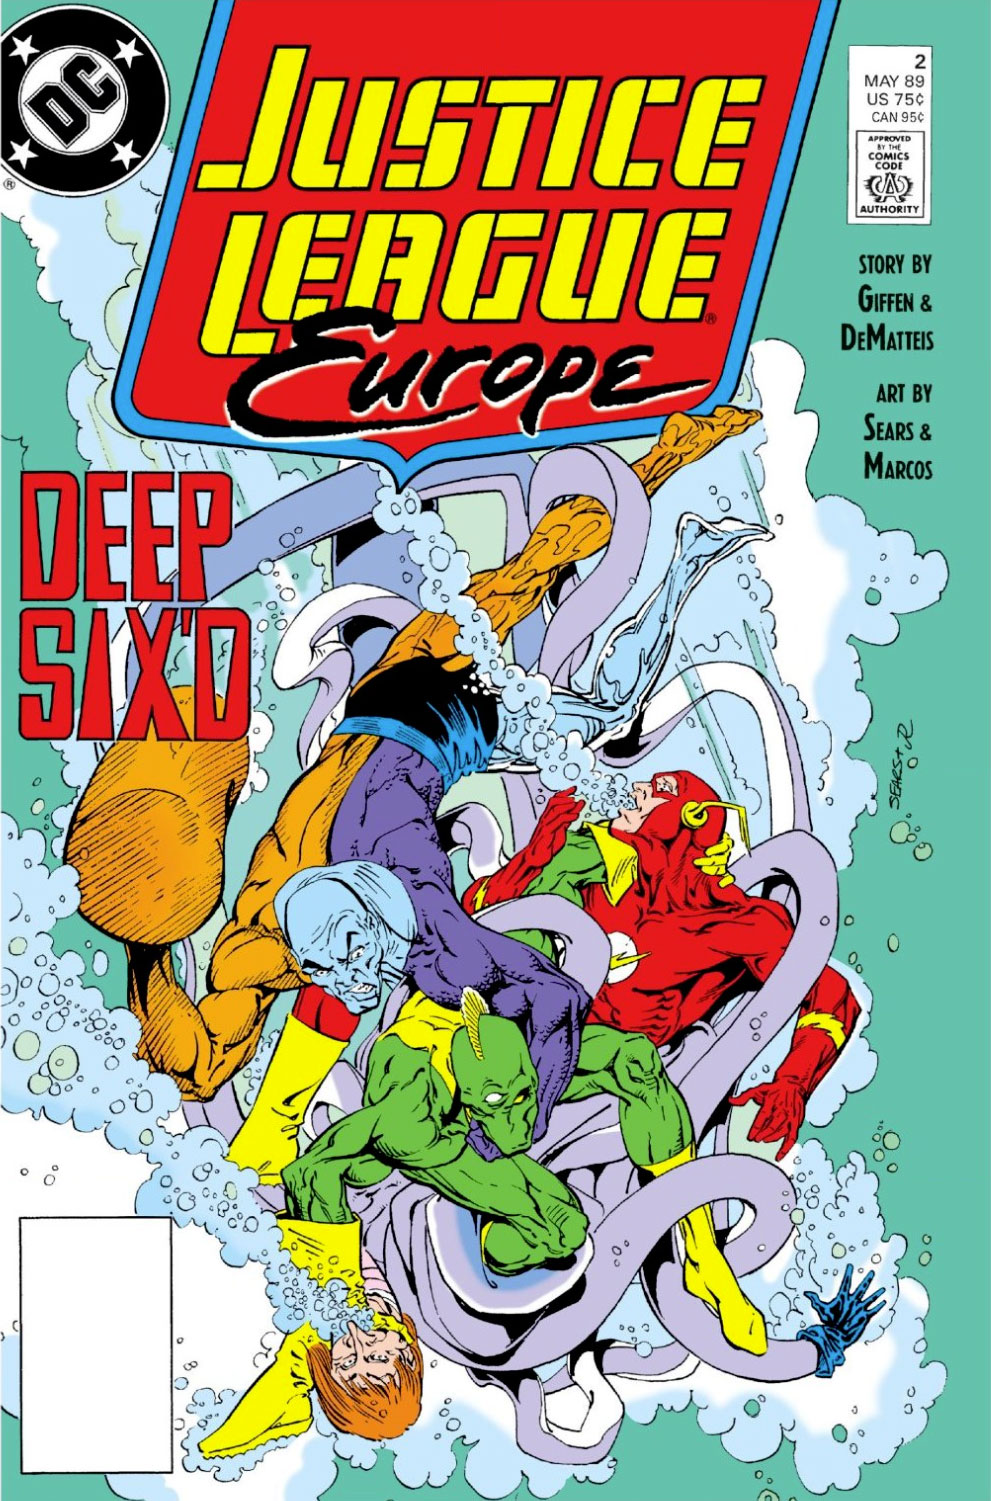 Justice League Europe #2 cover by Bart Sears and Joe Rubinstein